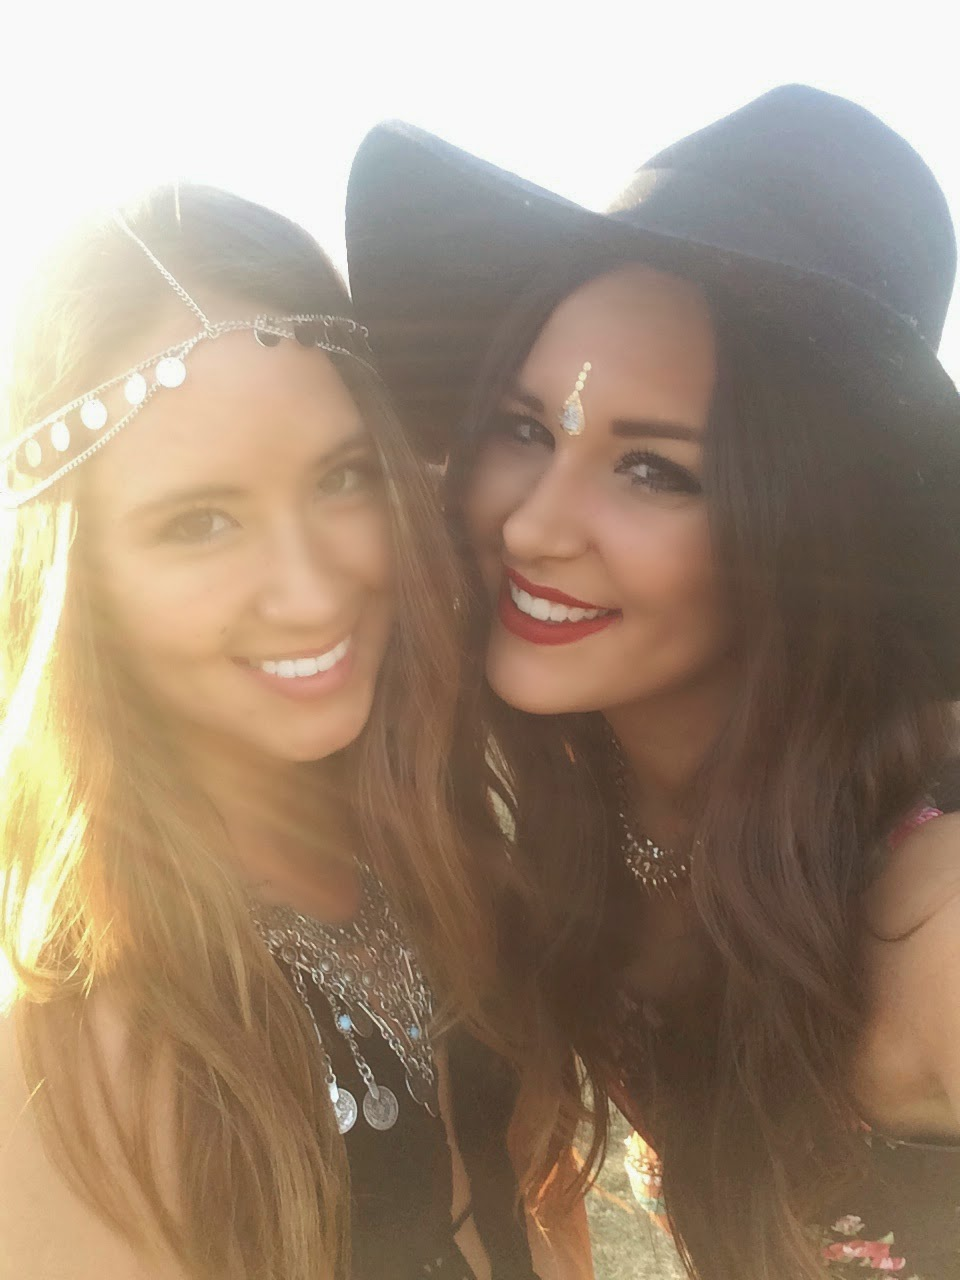 Fashion blogger selfies at Coachella in Palm Springs, California - Peace & Love: Coachella Outfits by popular Orlando fashion blogger Mash Elle